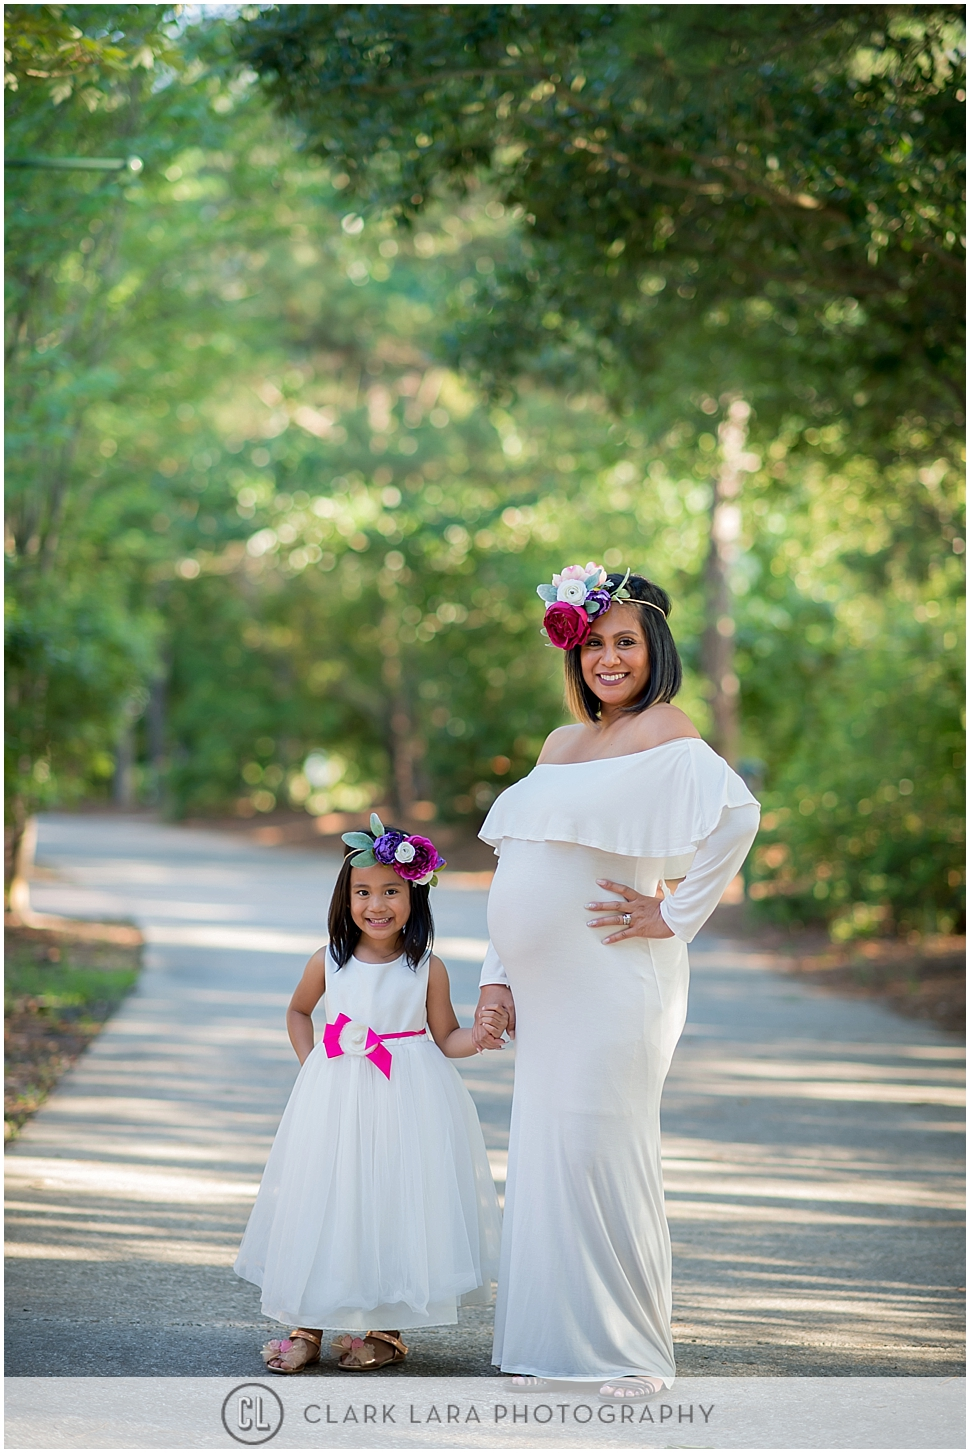 woodlands-family-maternity-photography-tua_0002.jpg